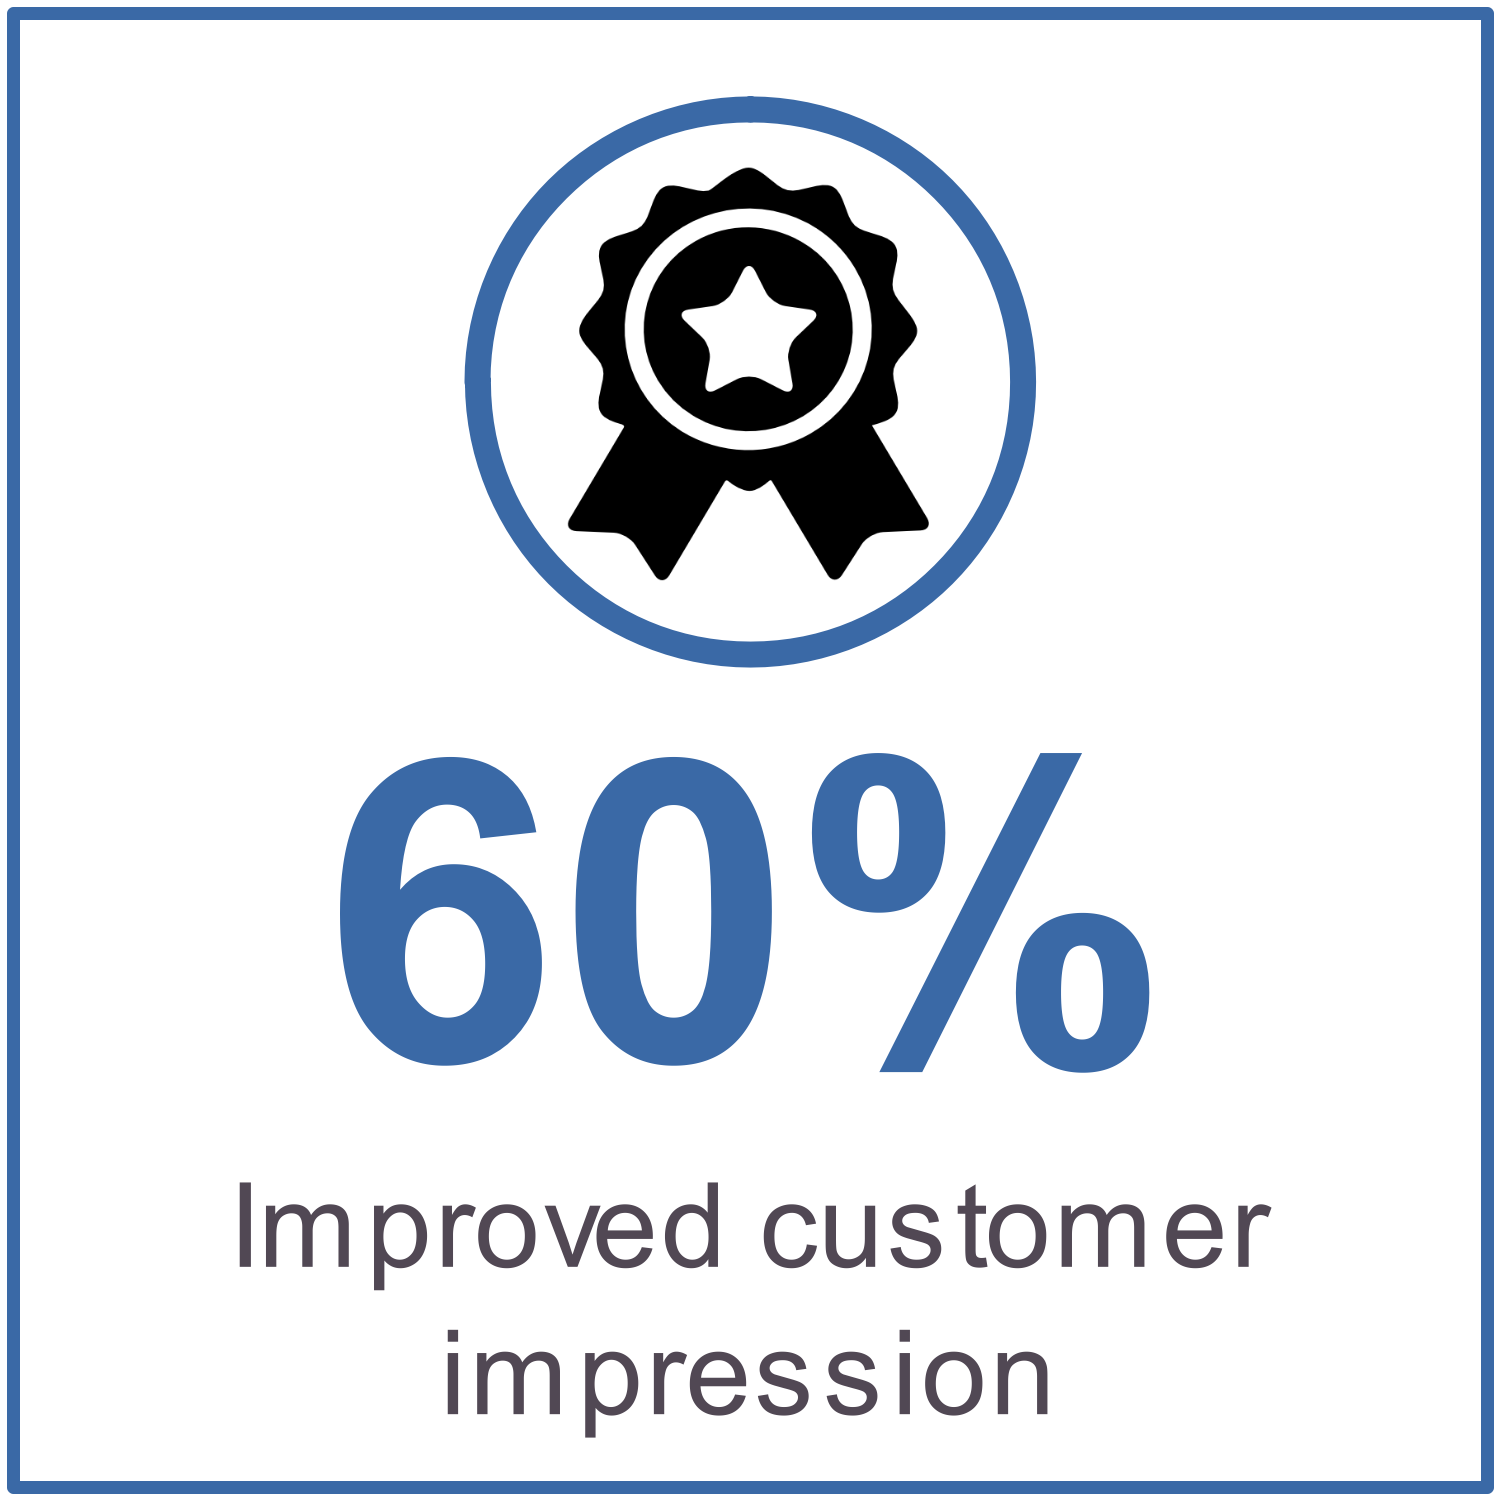 60% improved customer impression